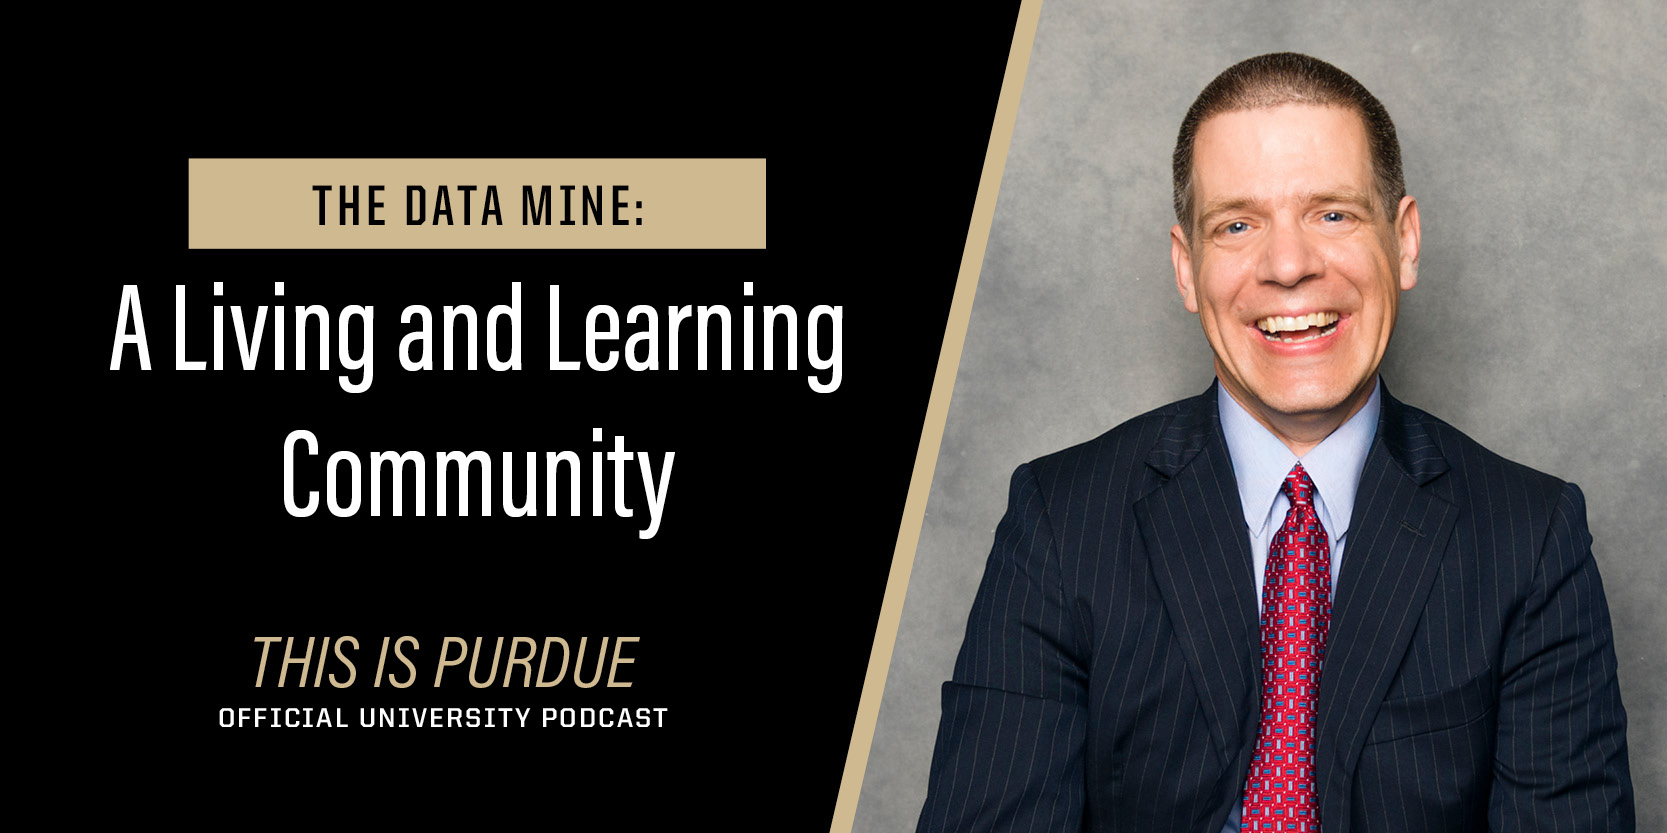 Mark Daniel Ward's image; the Data Mine: A Living and Learning Community